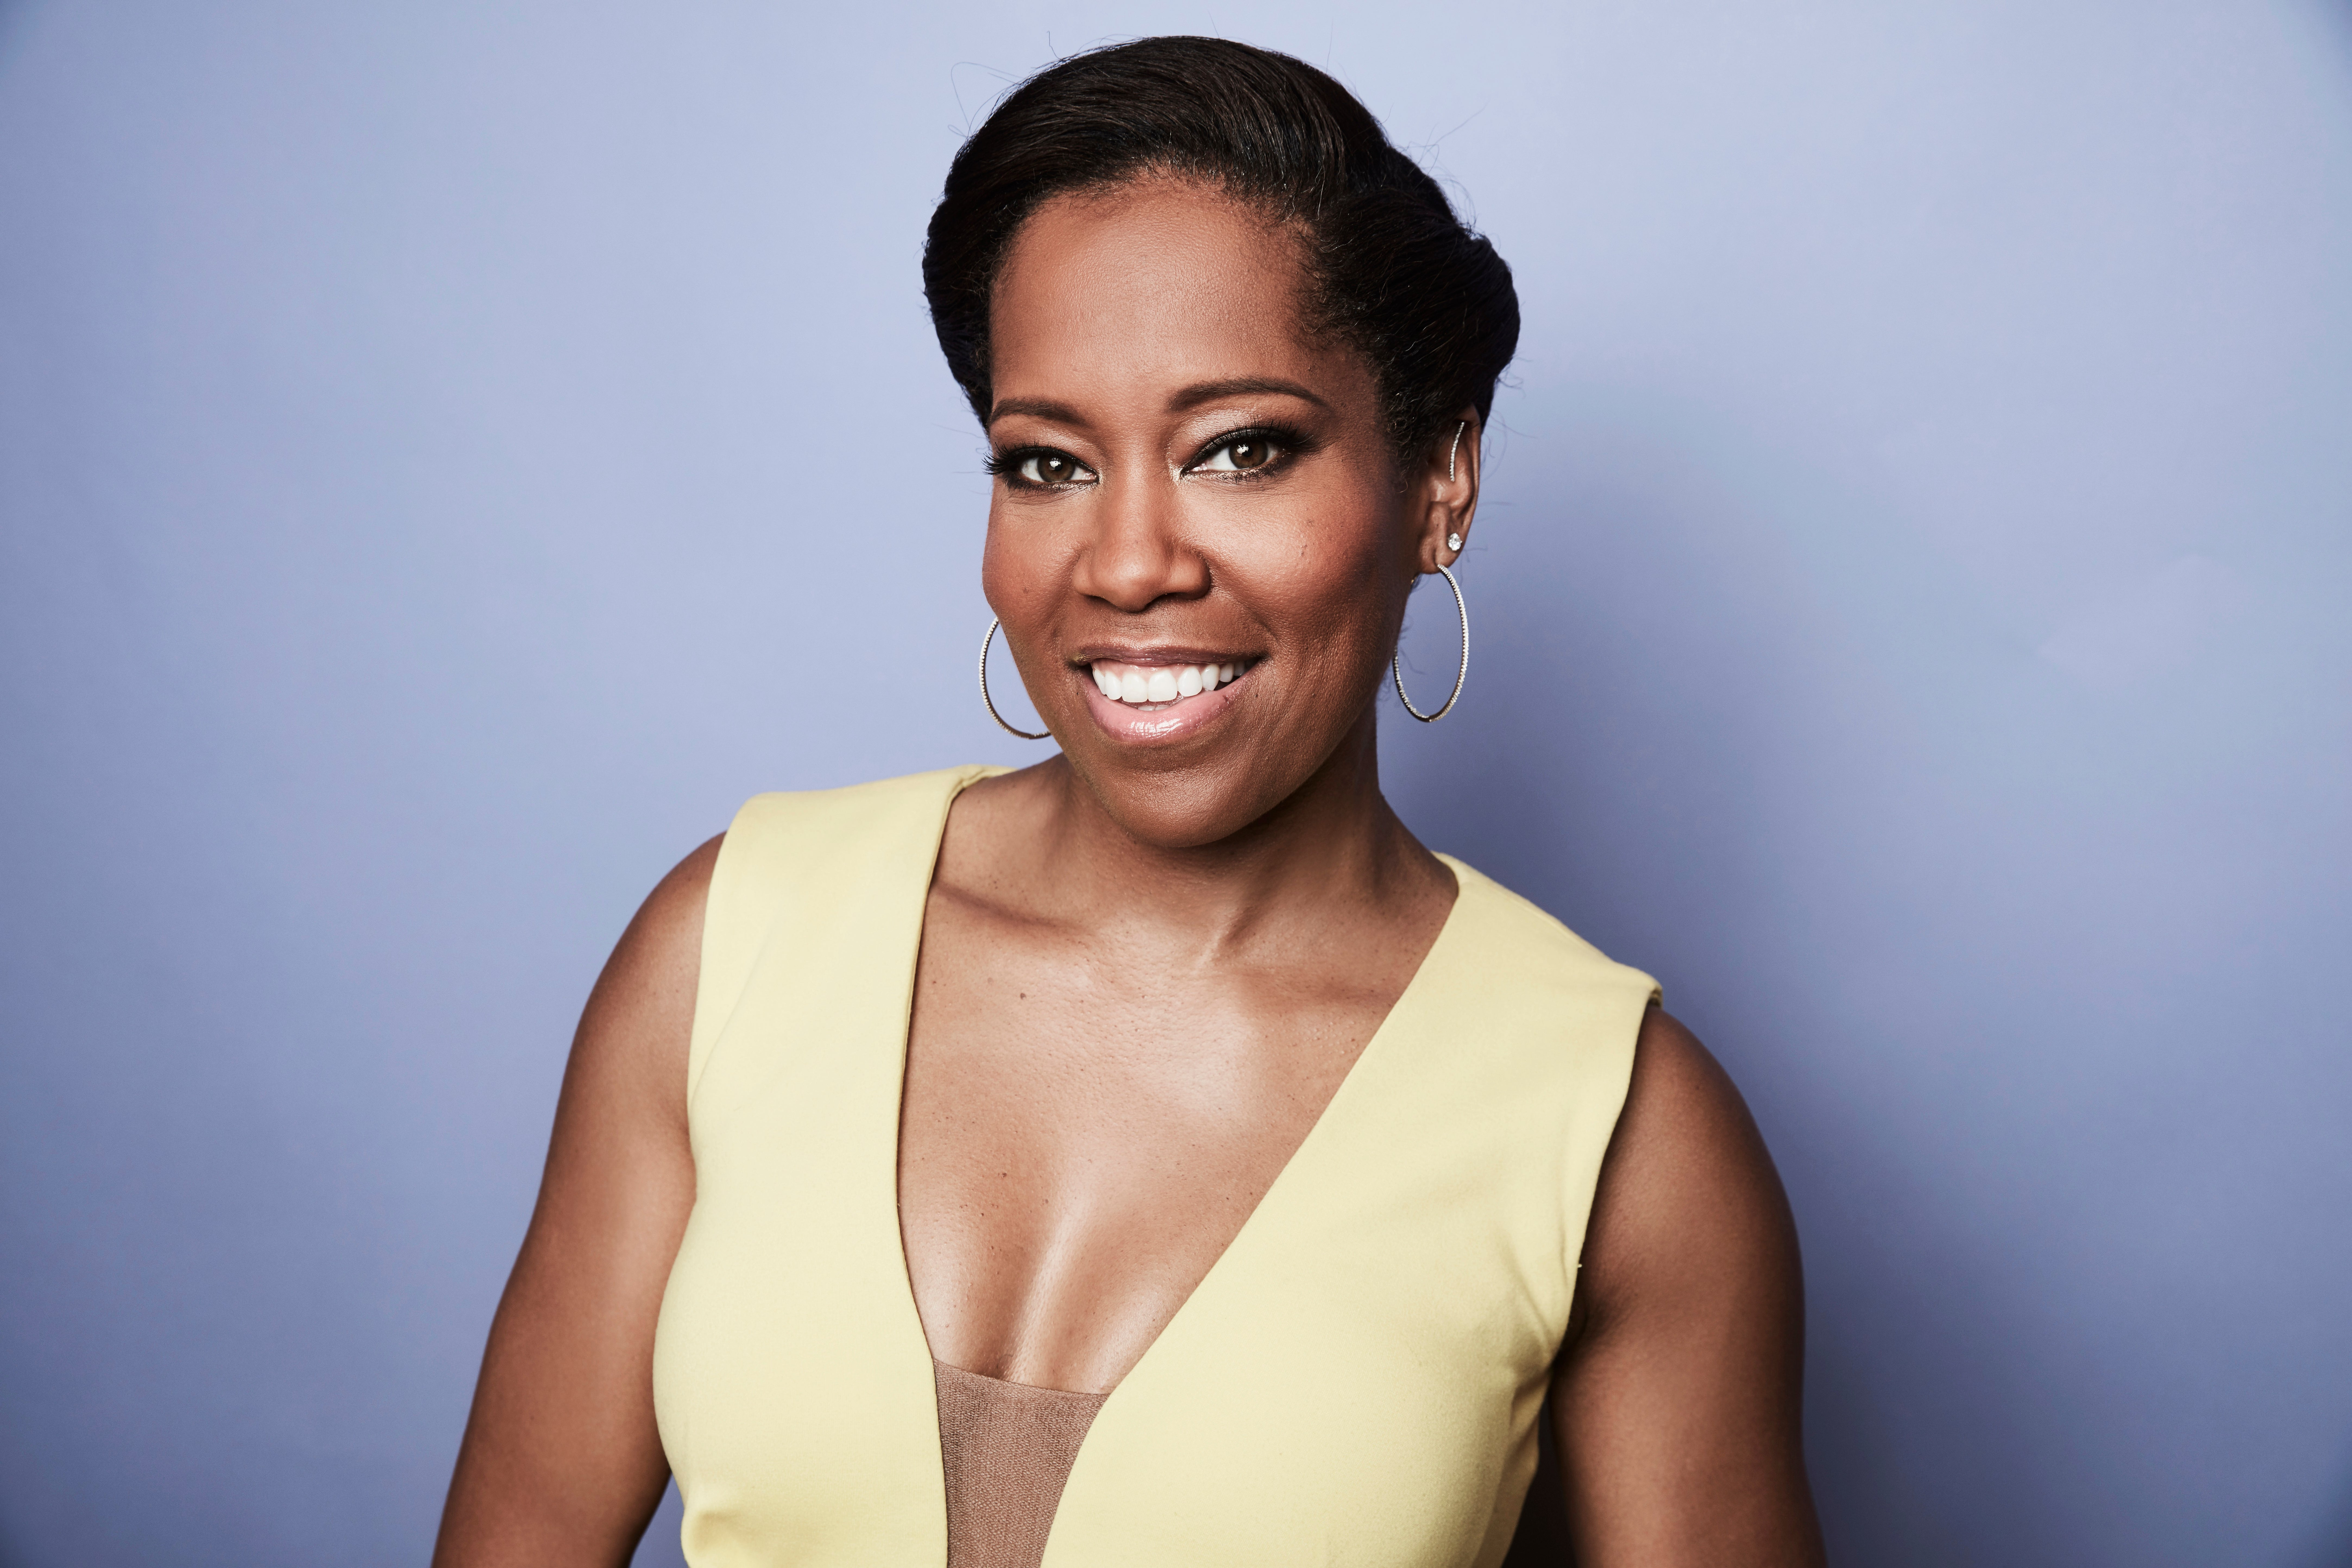 Regina King On Overcoming The Pitfalls Of Child Stardom